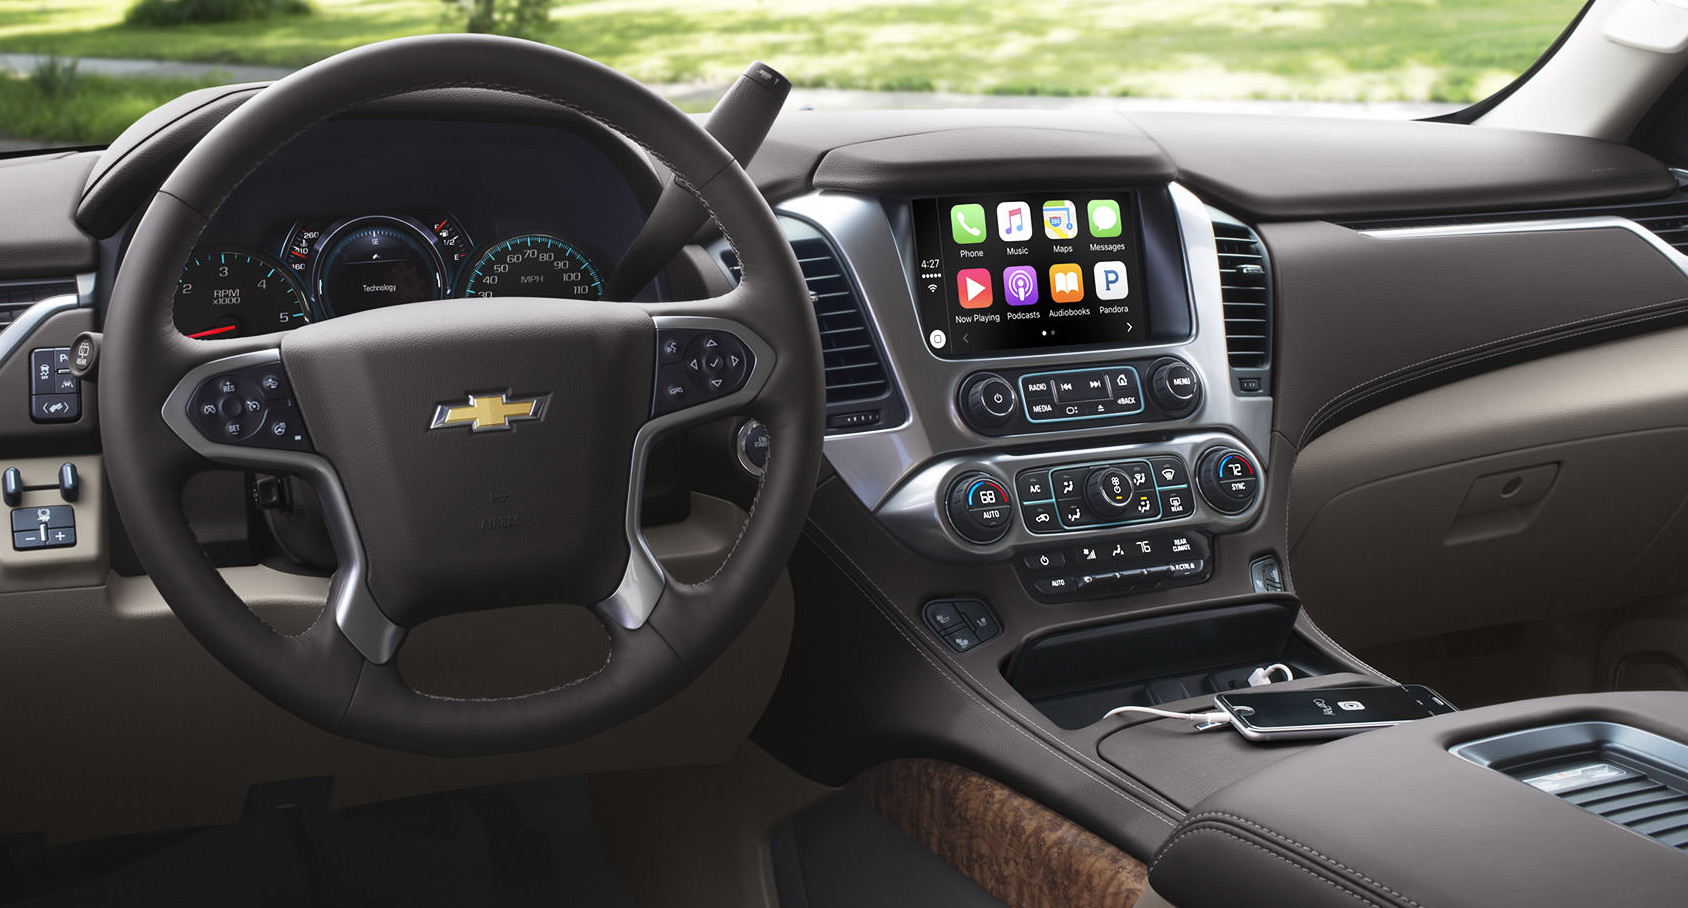 Valley Chevy - Man Buying New Chevrolet Vehicle: Interior